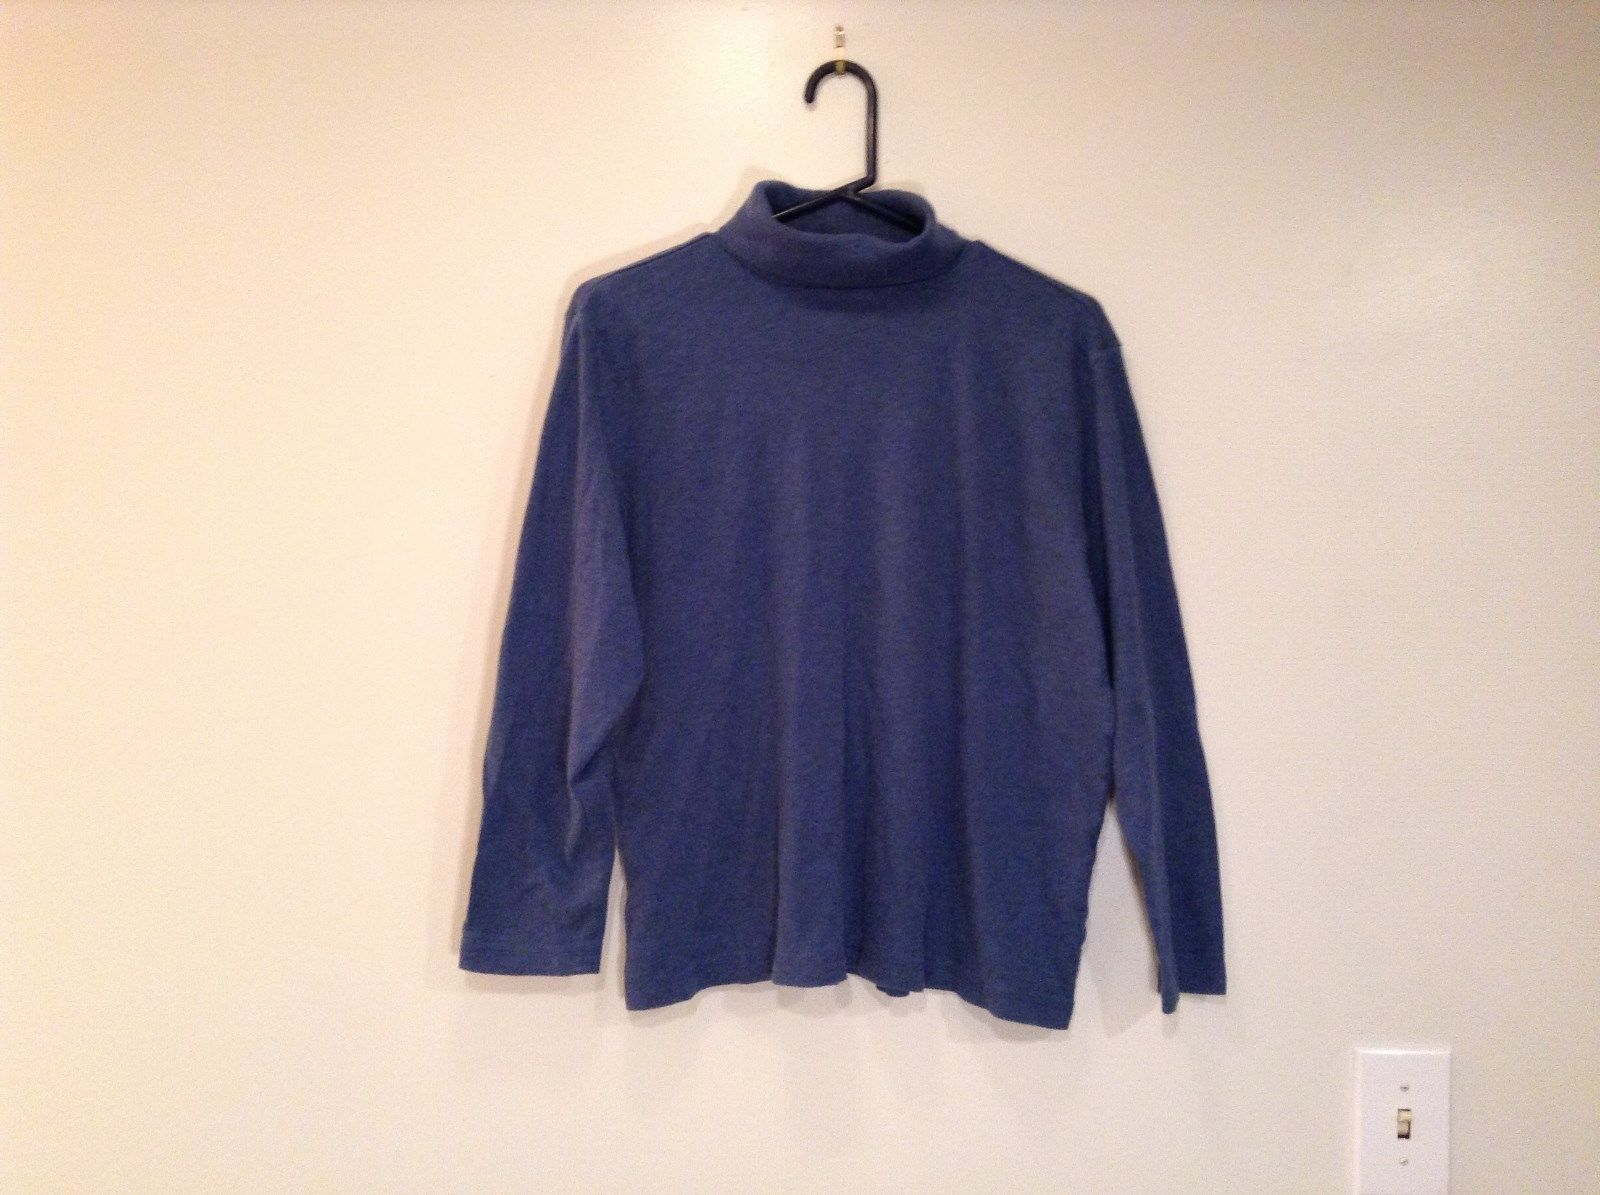 Long Sleeve Blue Turtleneck 100 Percent Cotton Top Liz Claiborne Size XL